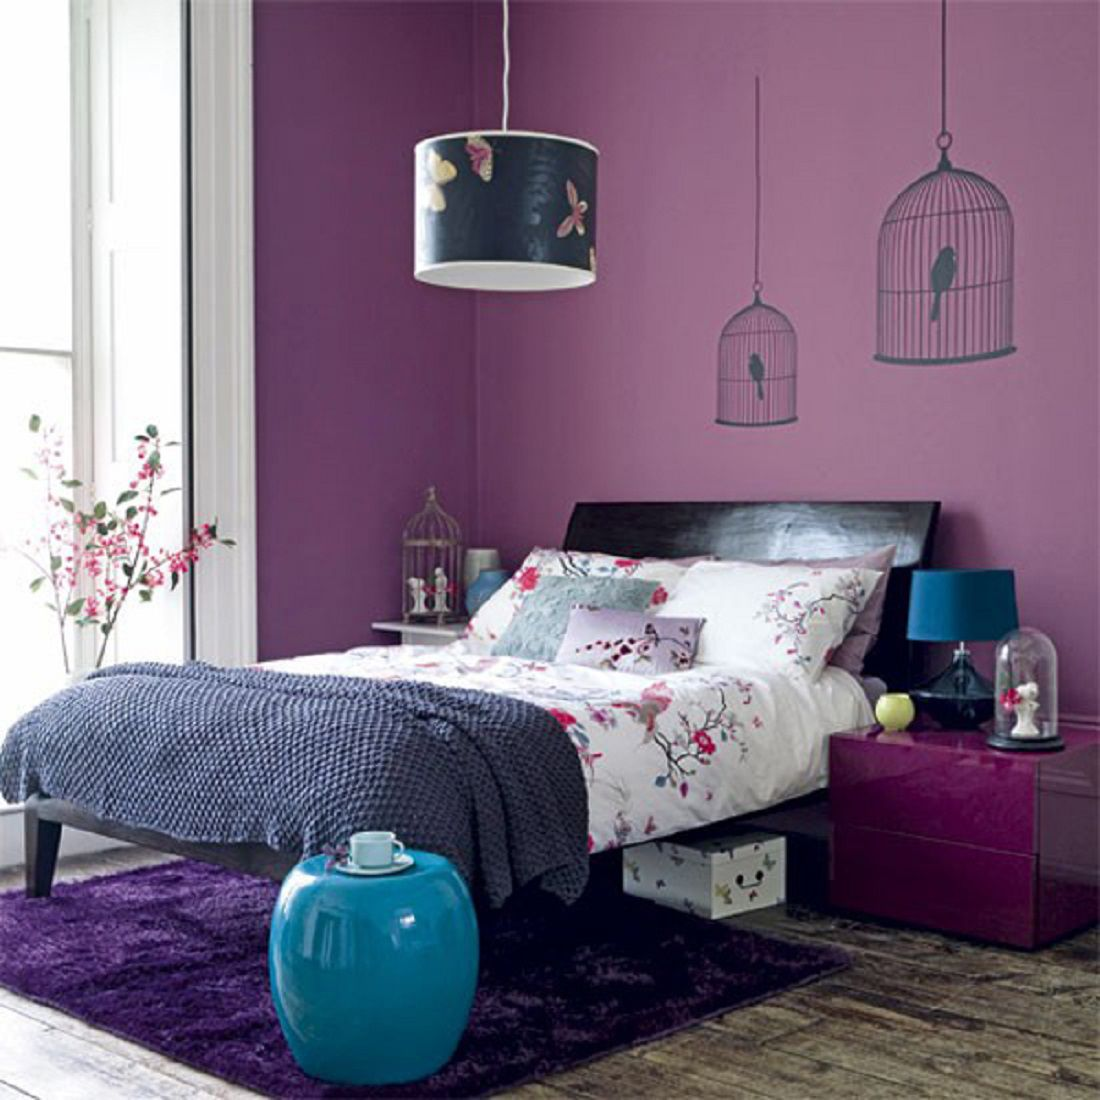 Decorating Your Bedroom with Green, Blue, and Purple